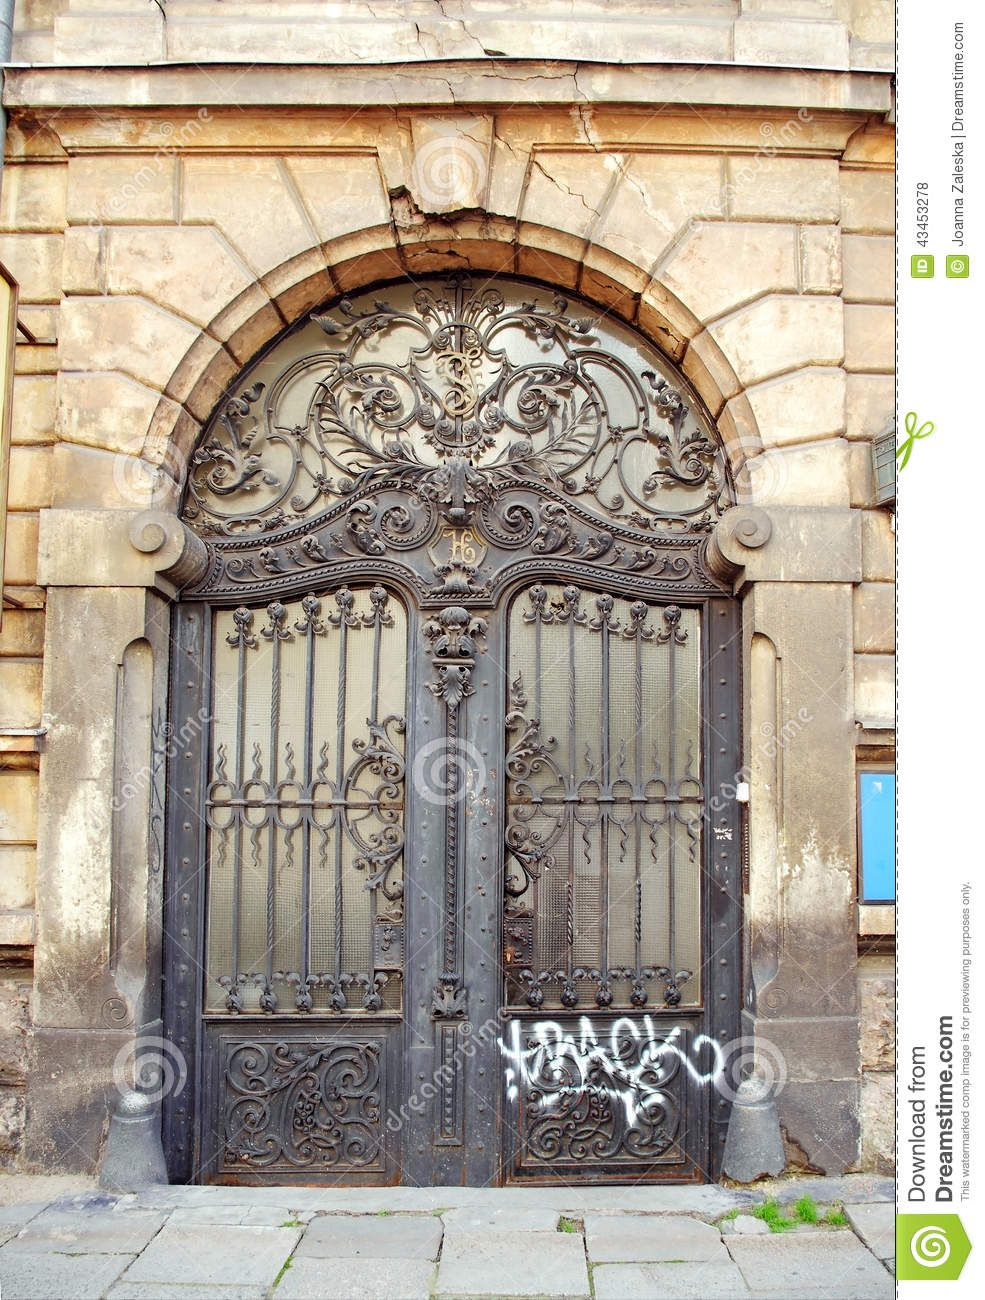 Beautiful art nouveau door gate with ugly graffiti download from